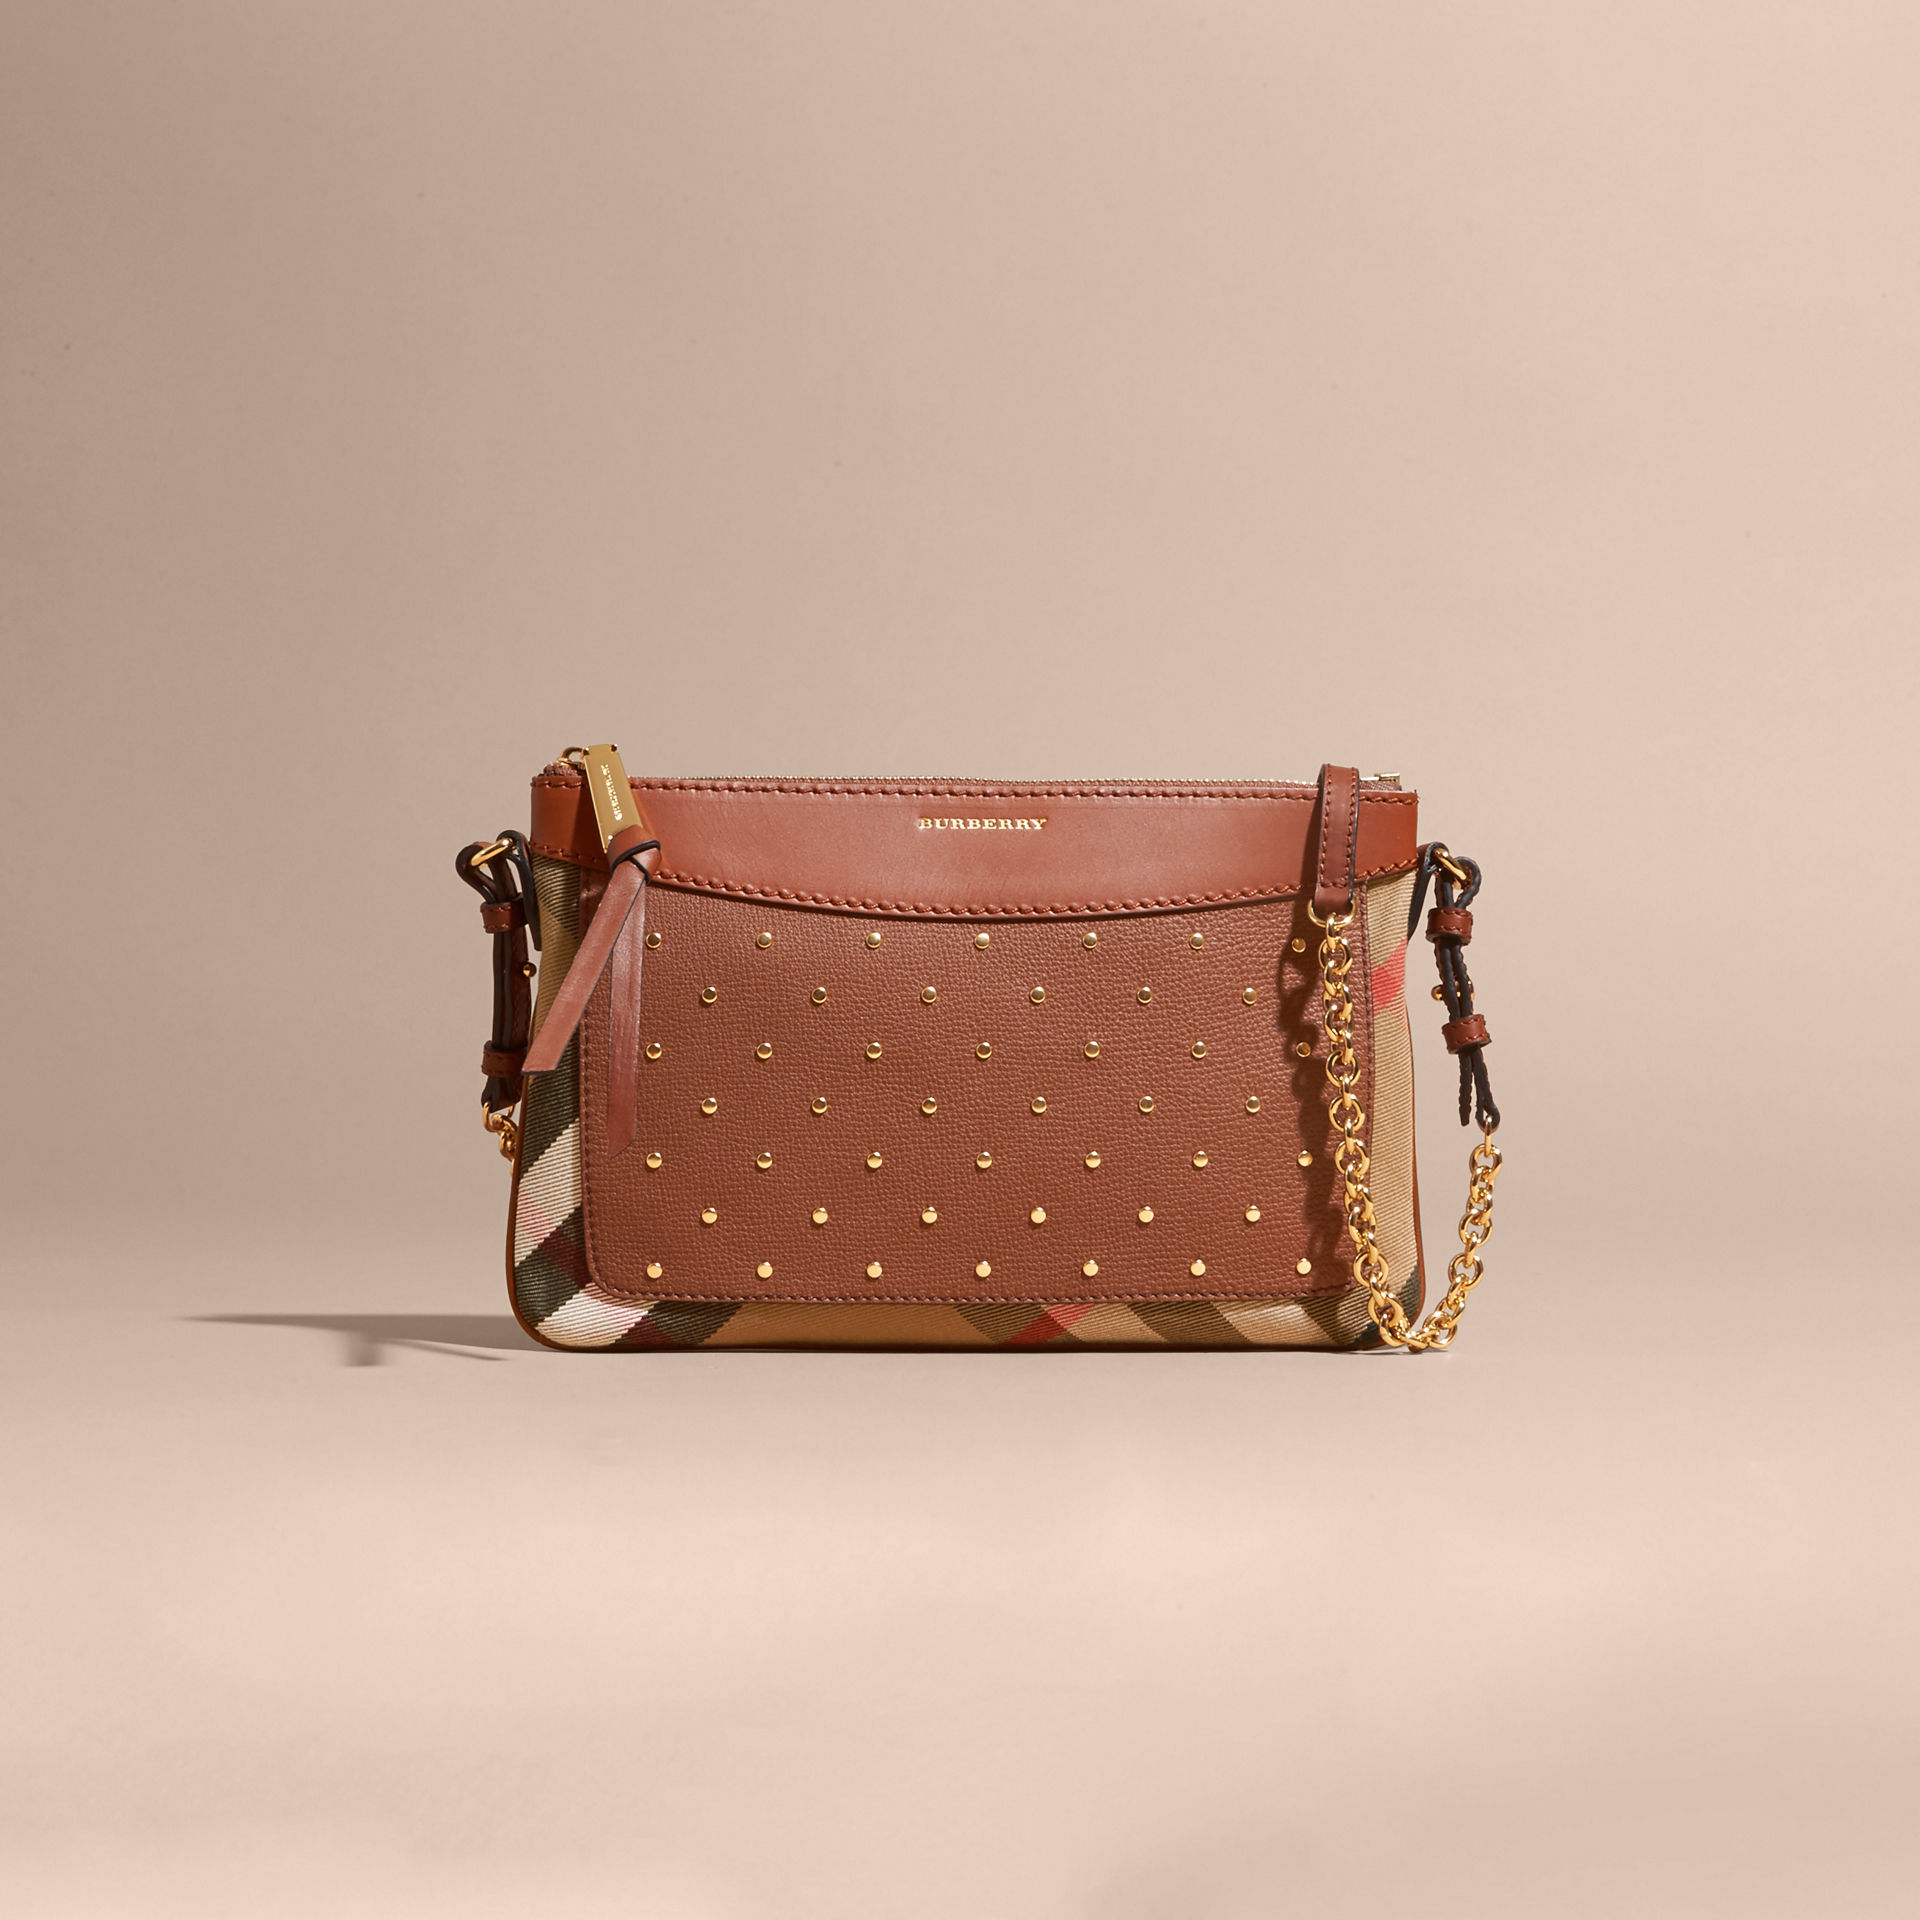 79d6d1166a479a Burberry Clutch Bags Uk | Stanford Center for Opportunity Policy in ...